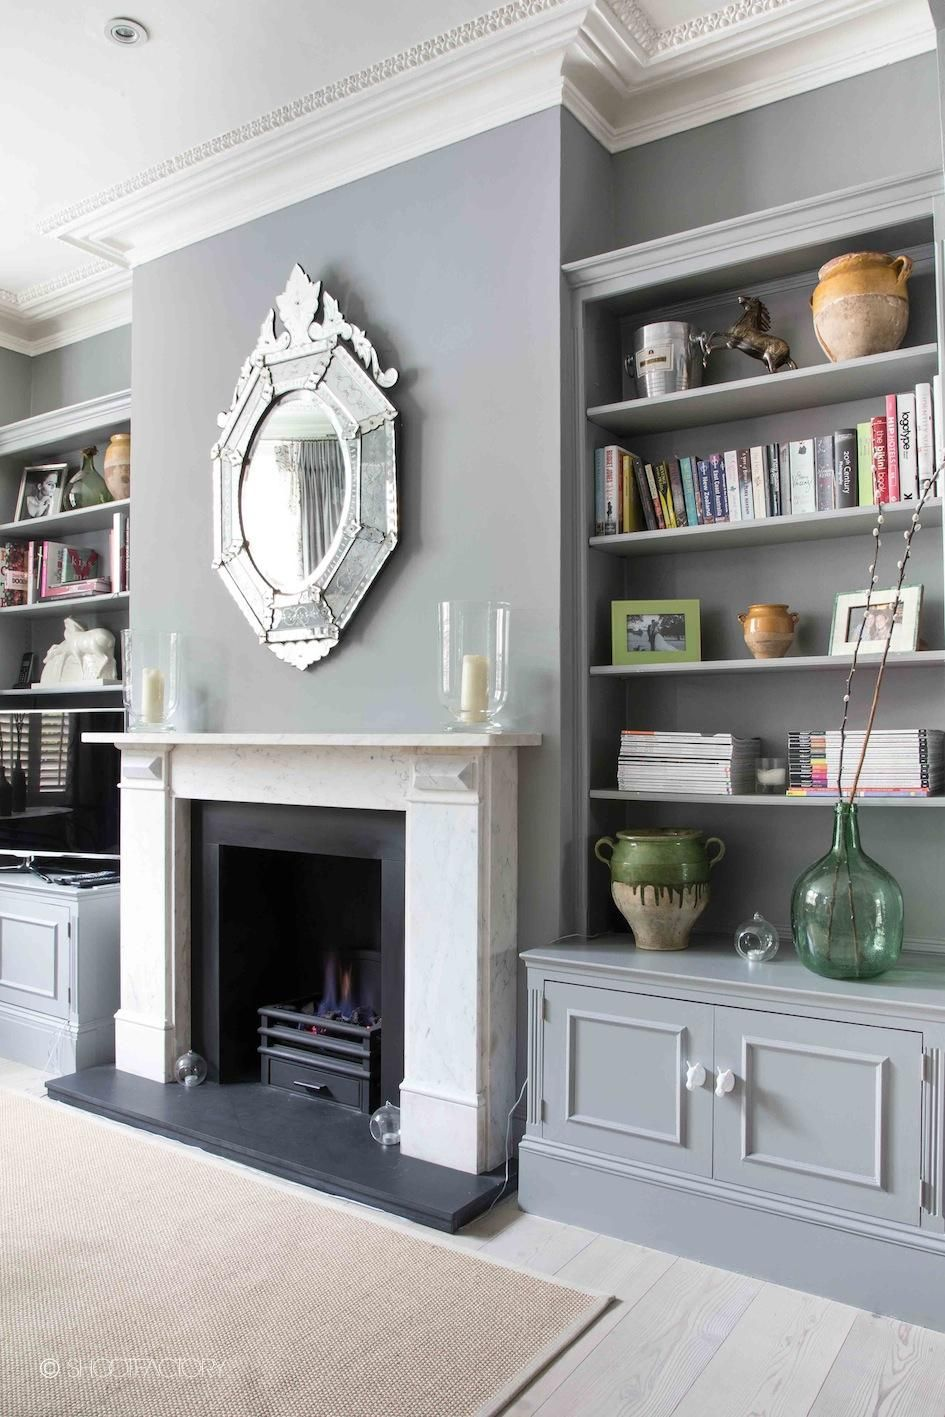 Superb When A Room Looks Dark And With No Focus, Add A Fireplace To Bring A Centre.